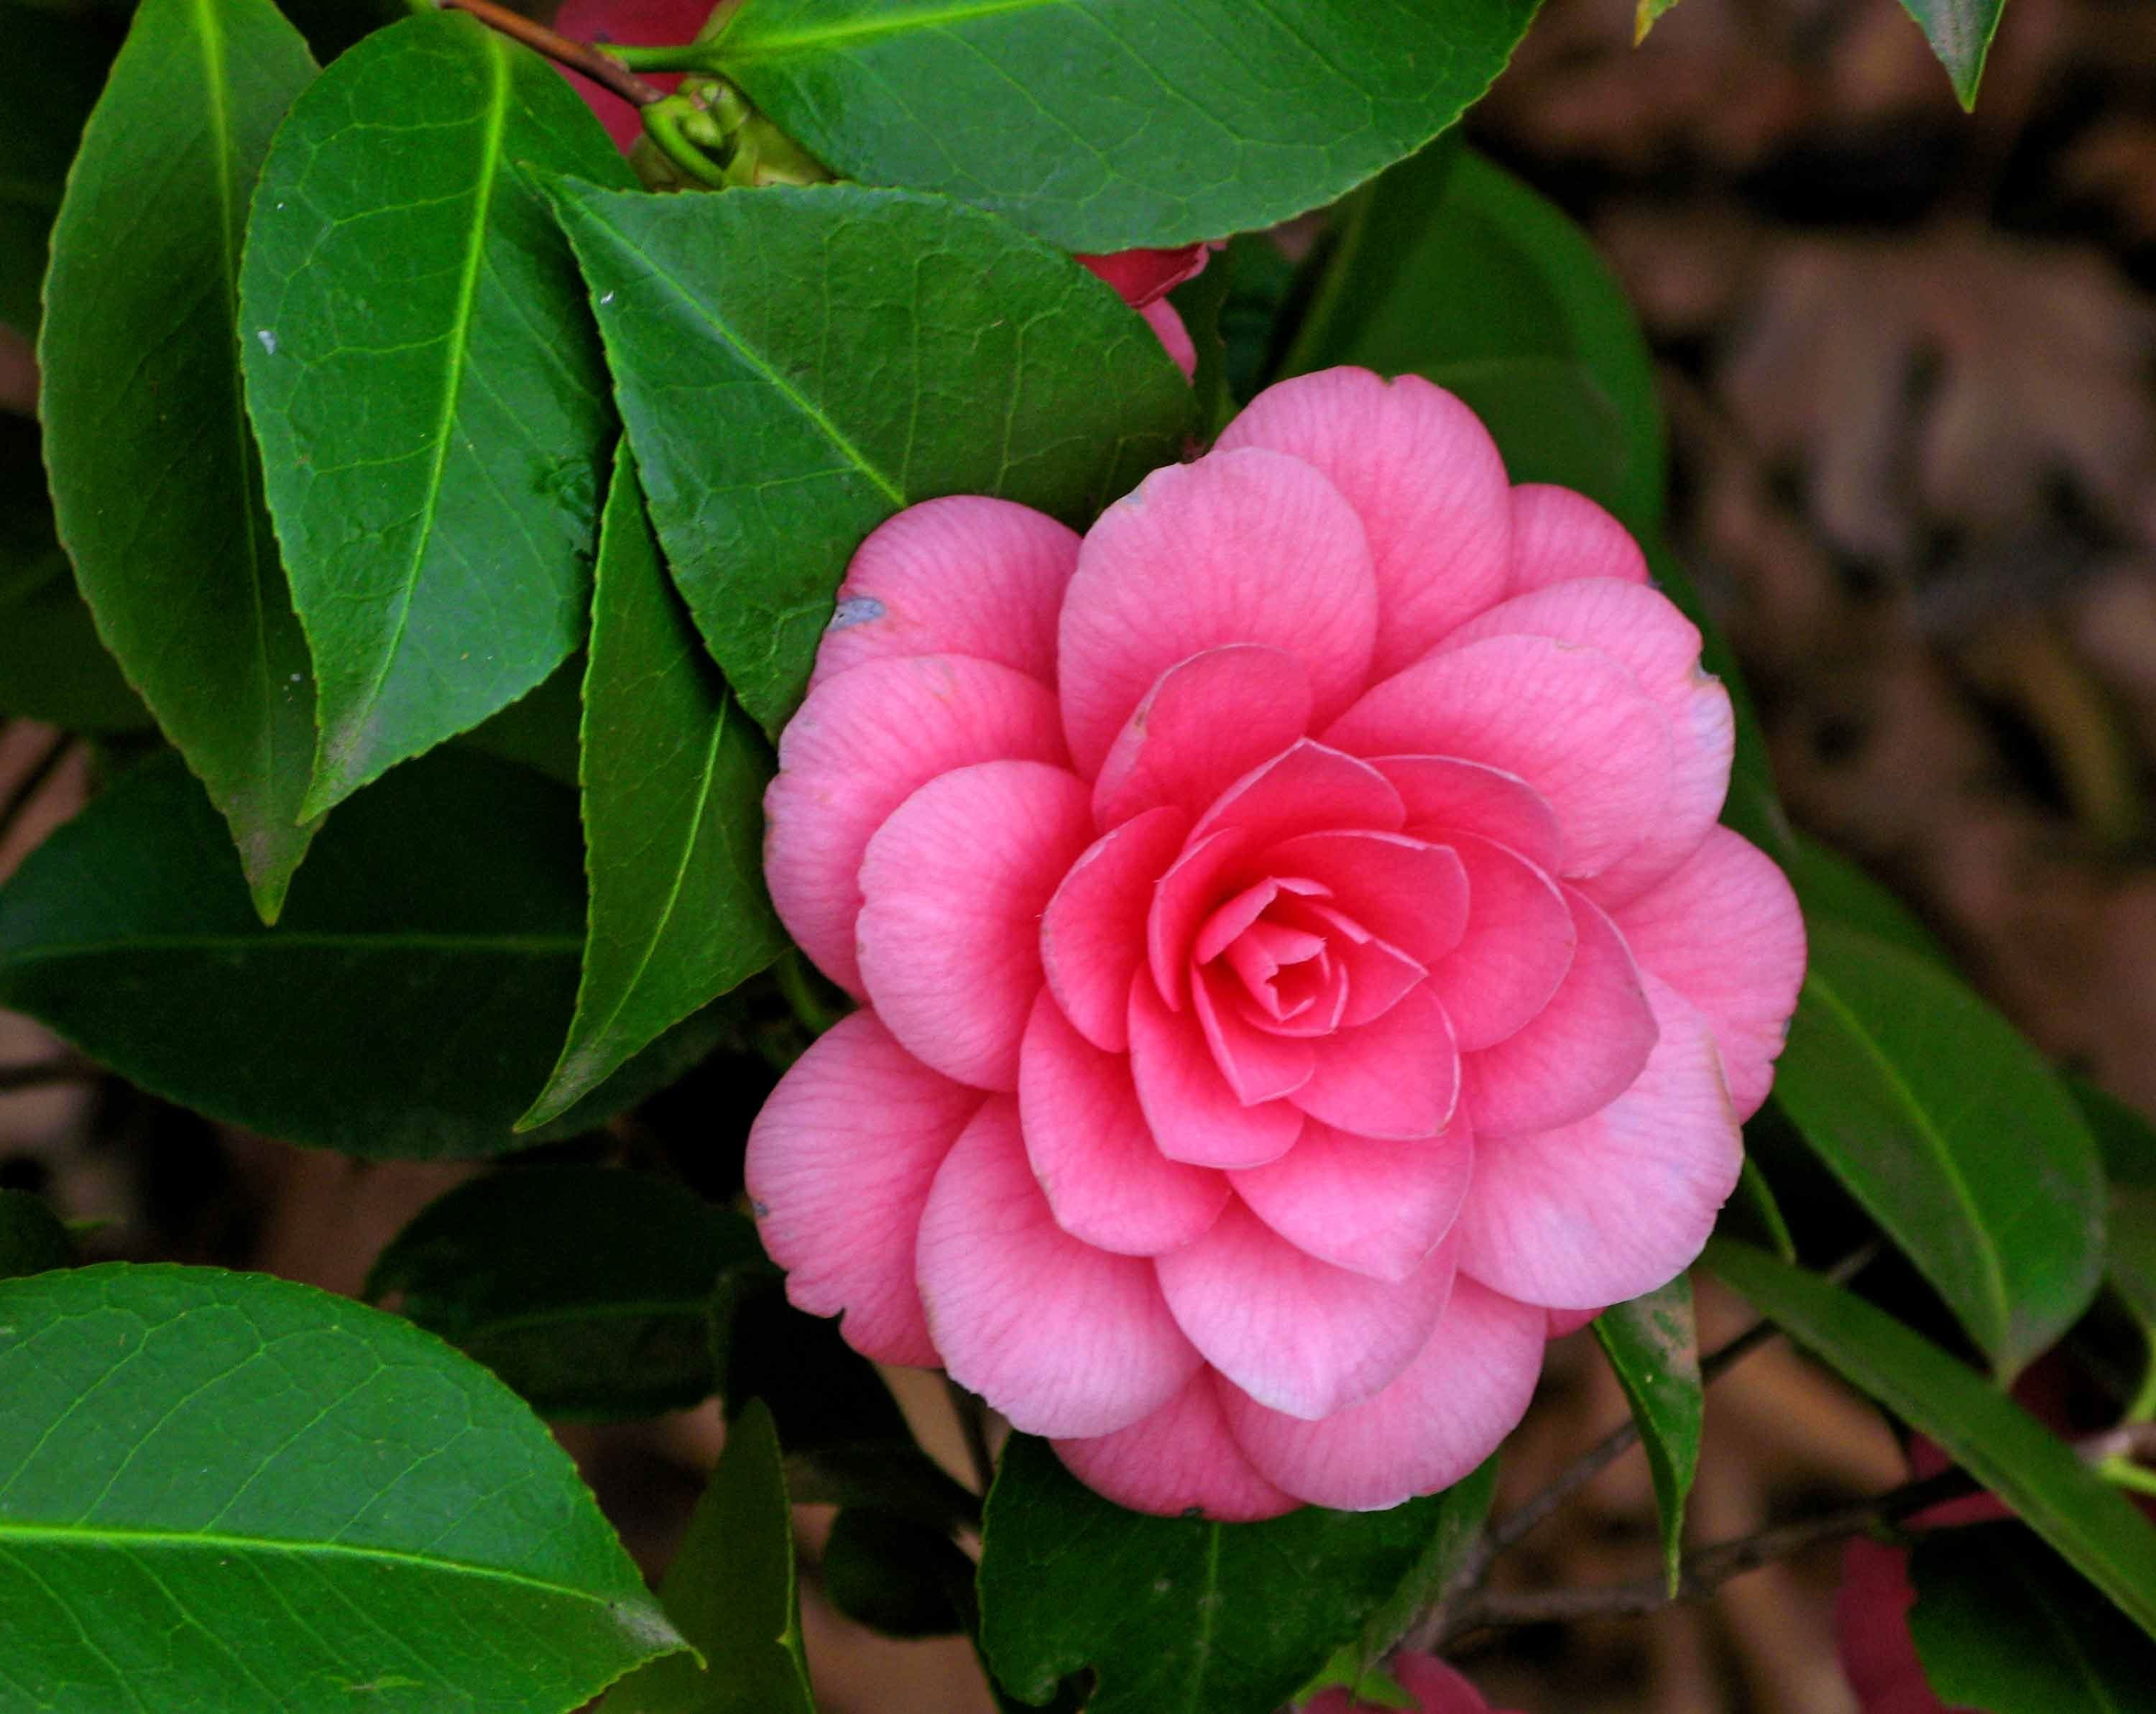 Camellia Flower Is A Broadleaf Woody Plant Native To South Eastern Asia Bhutan Japan And China Countries The Name Flowers Flowers Name List Camellia Flower